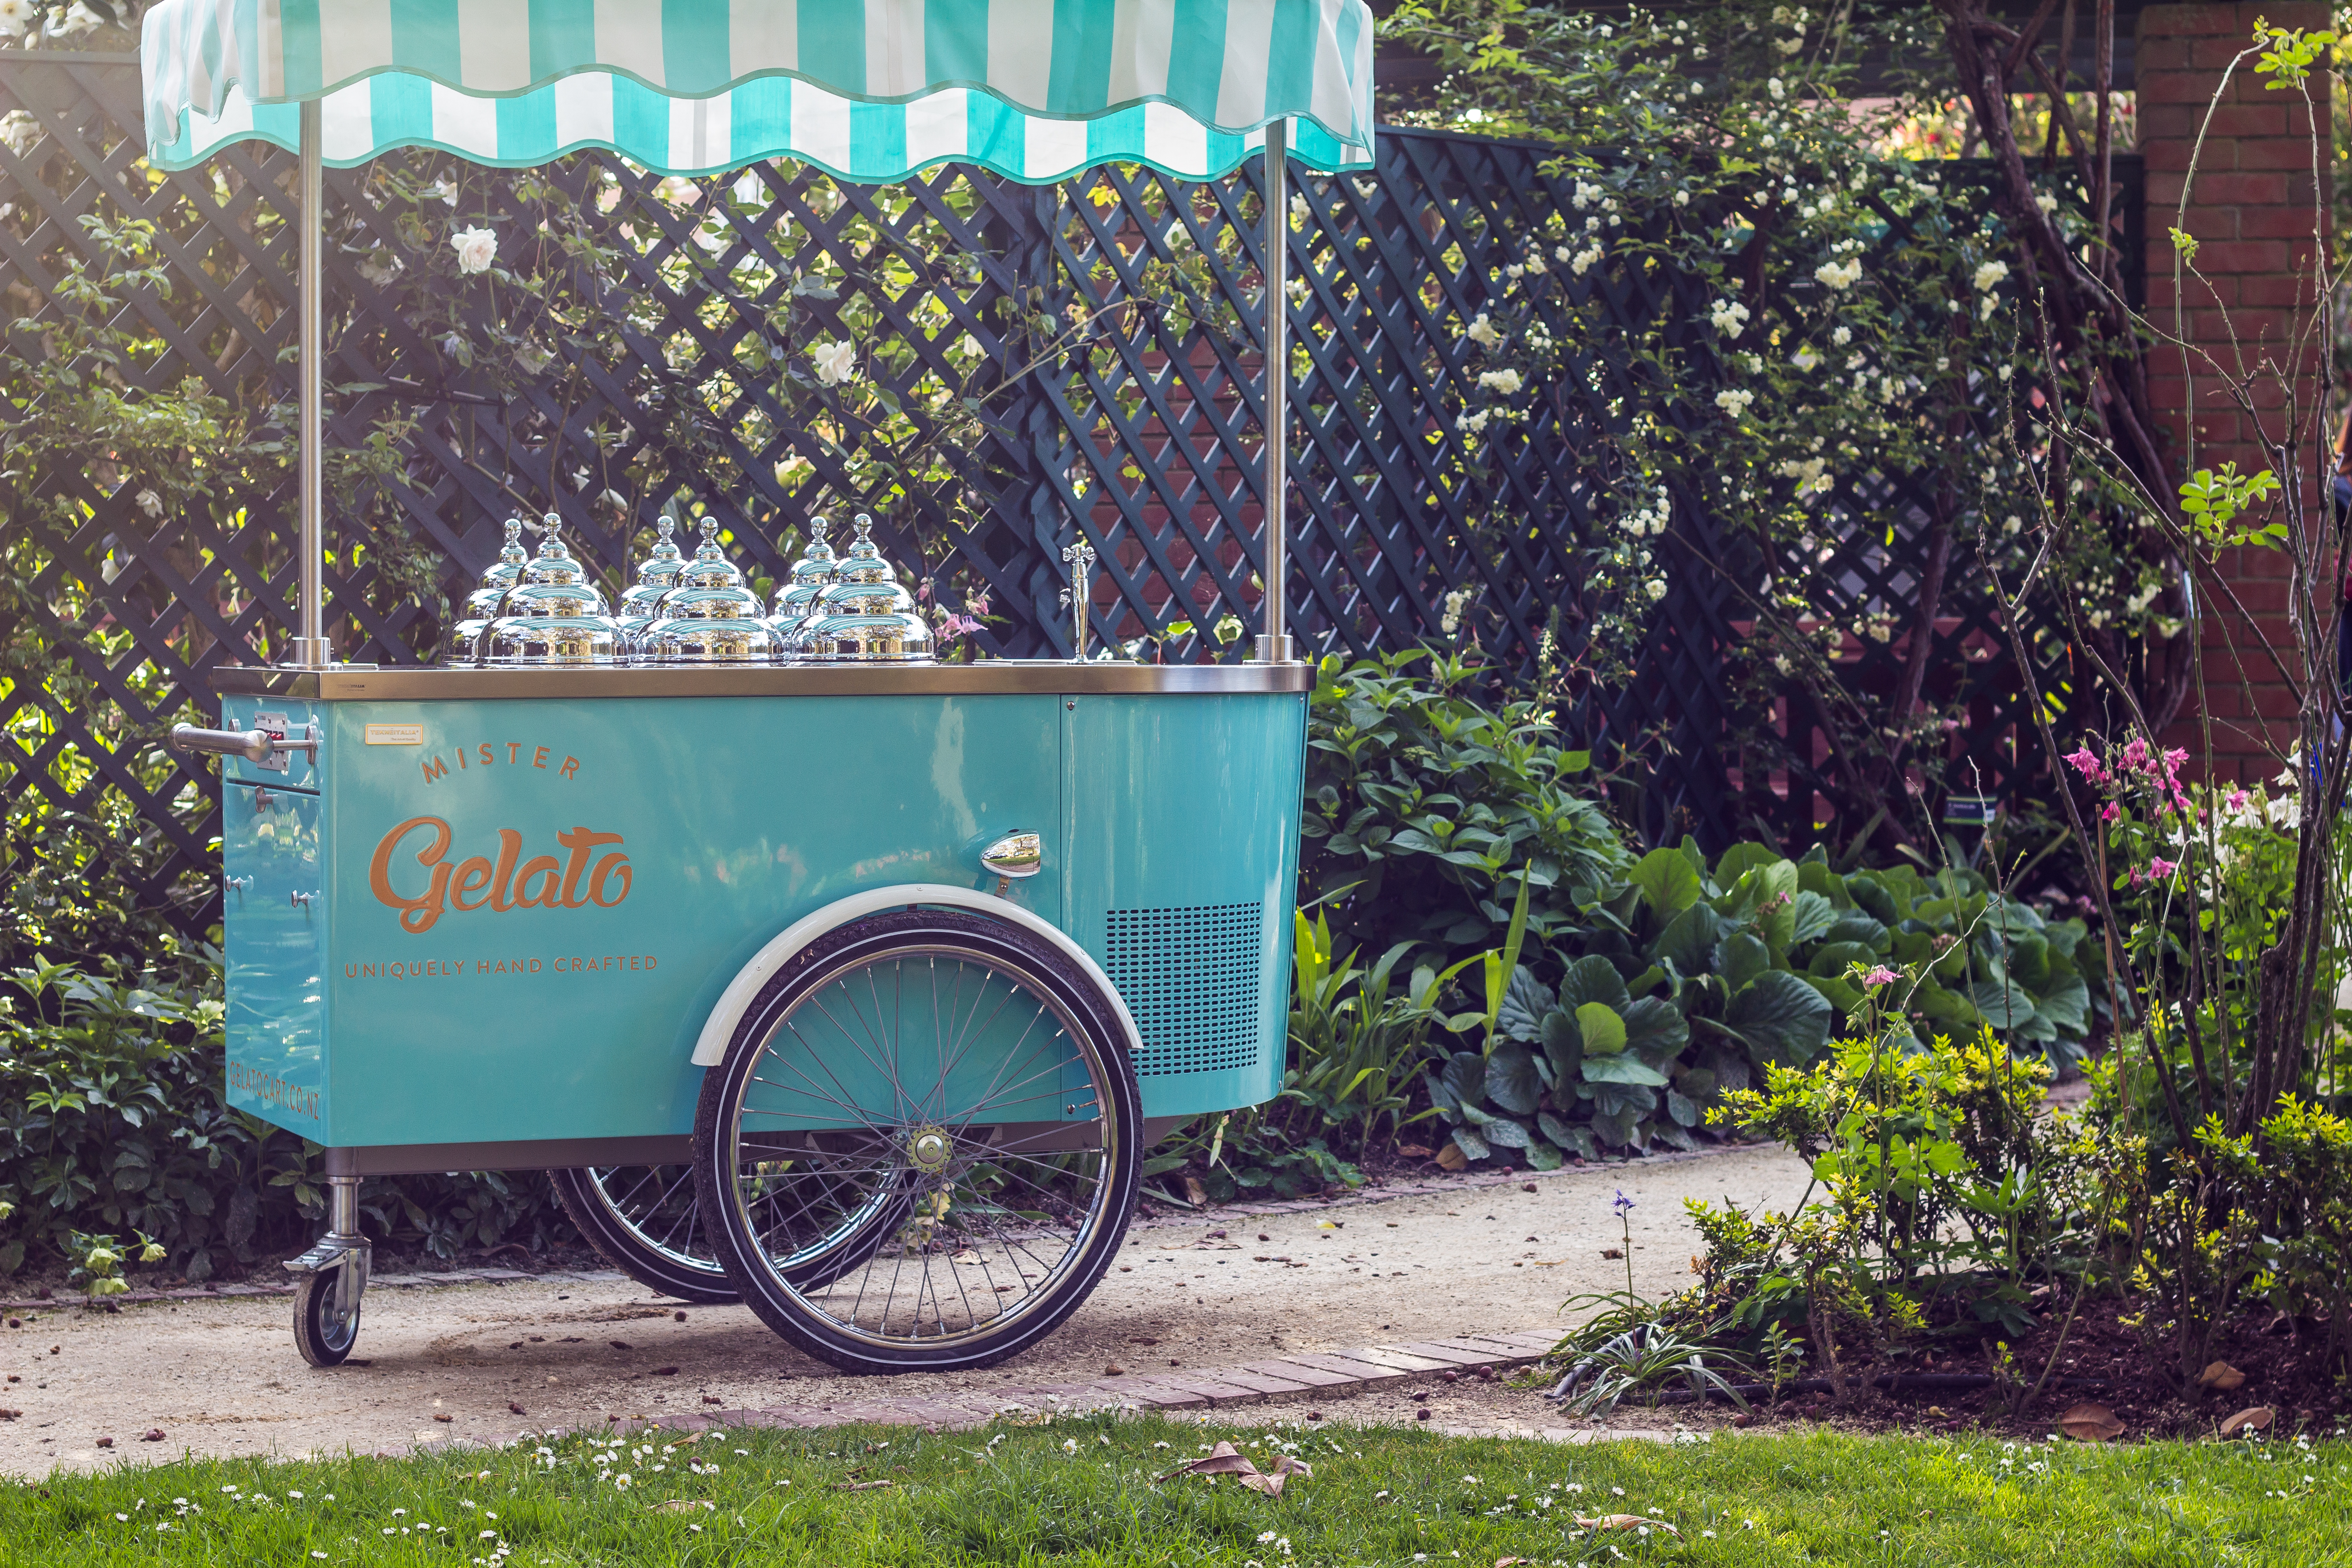 Our beautiful italian gelato cart